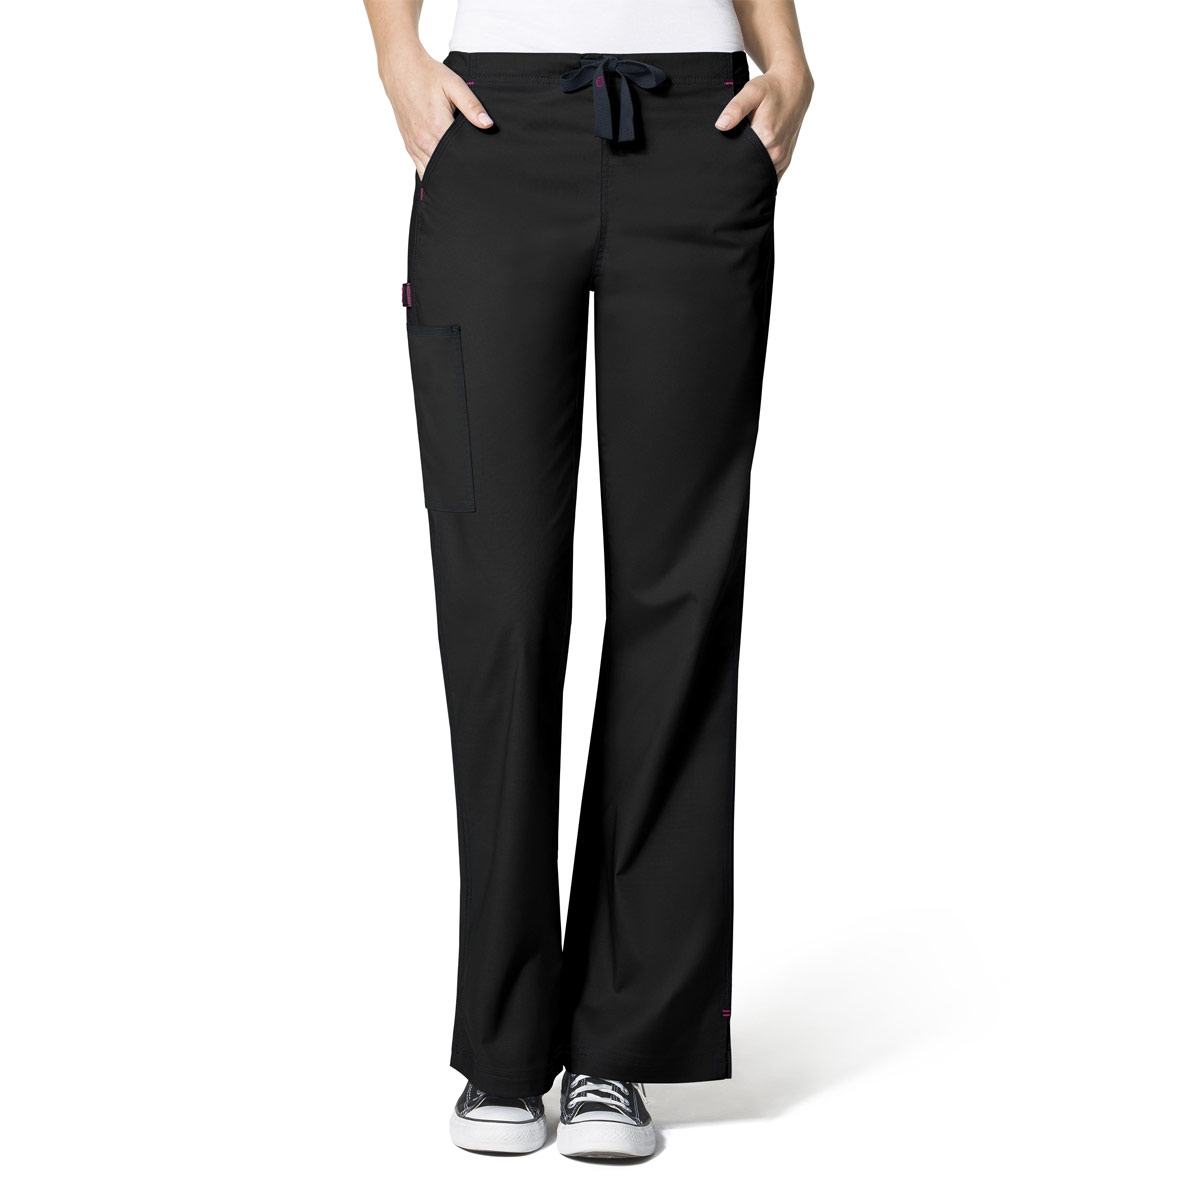 0a1b376e89350 WonderFlex Grace Flare Leg Scrub Pants For Women - WonderWink Scrubs